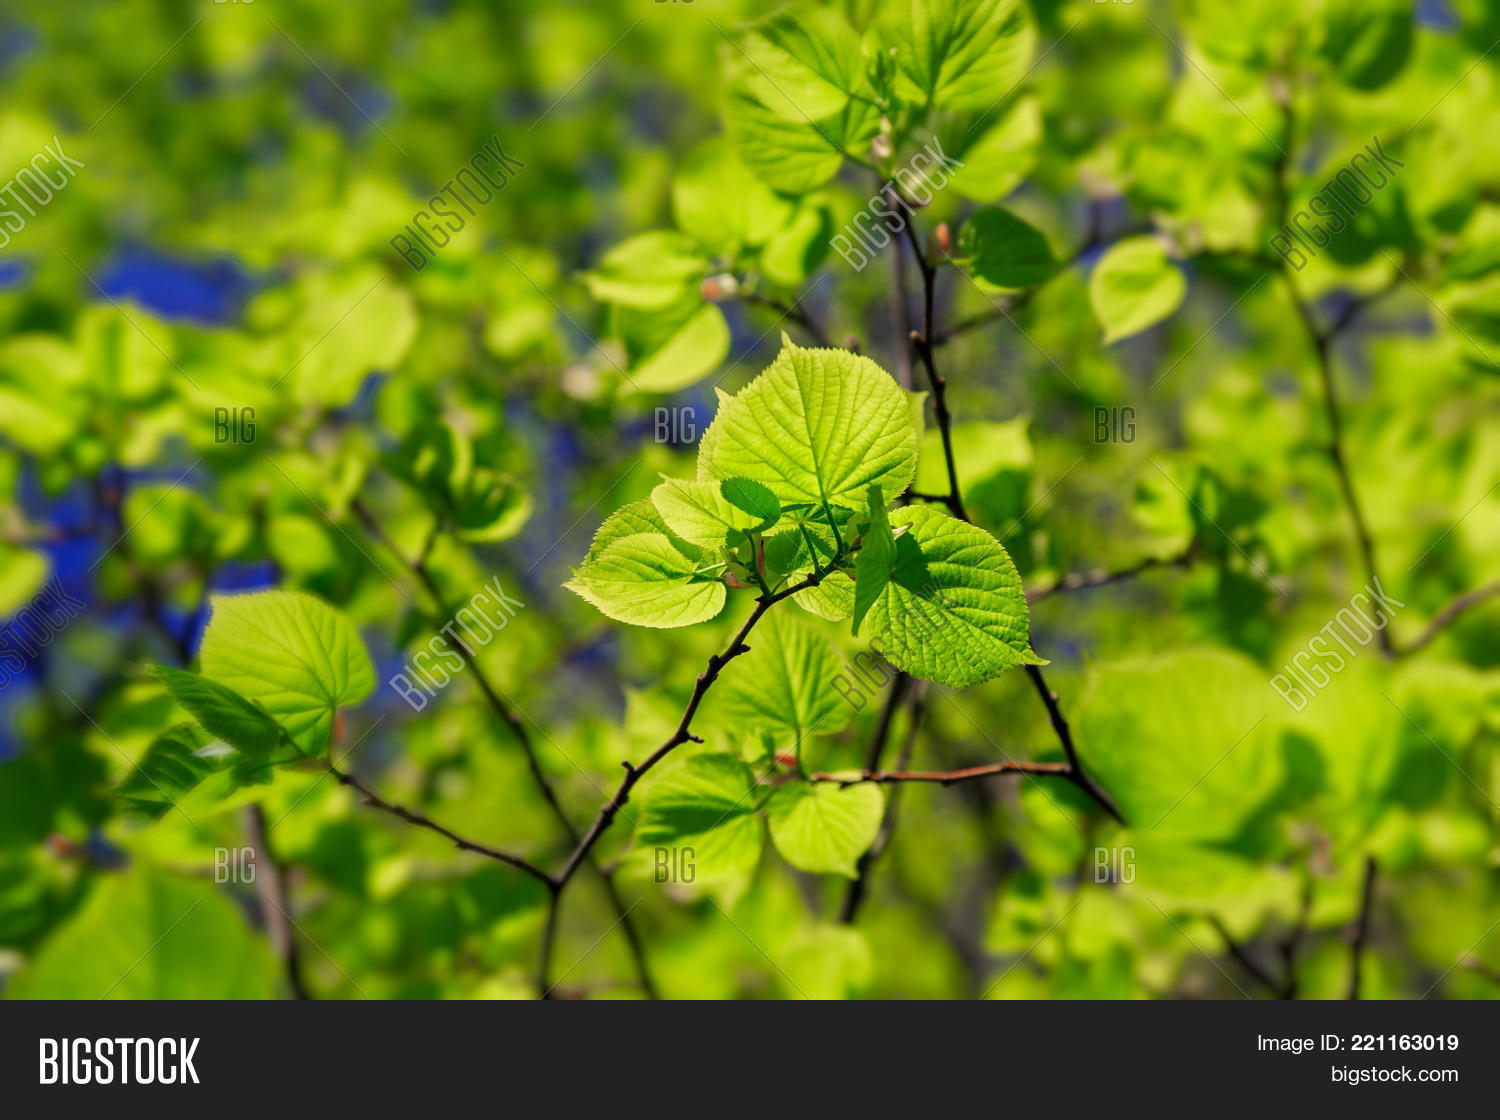 Light Shining Through The Leaves Of A Little Leaf Linden Tree Or